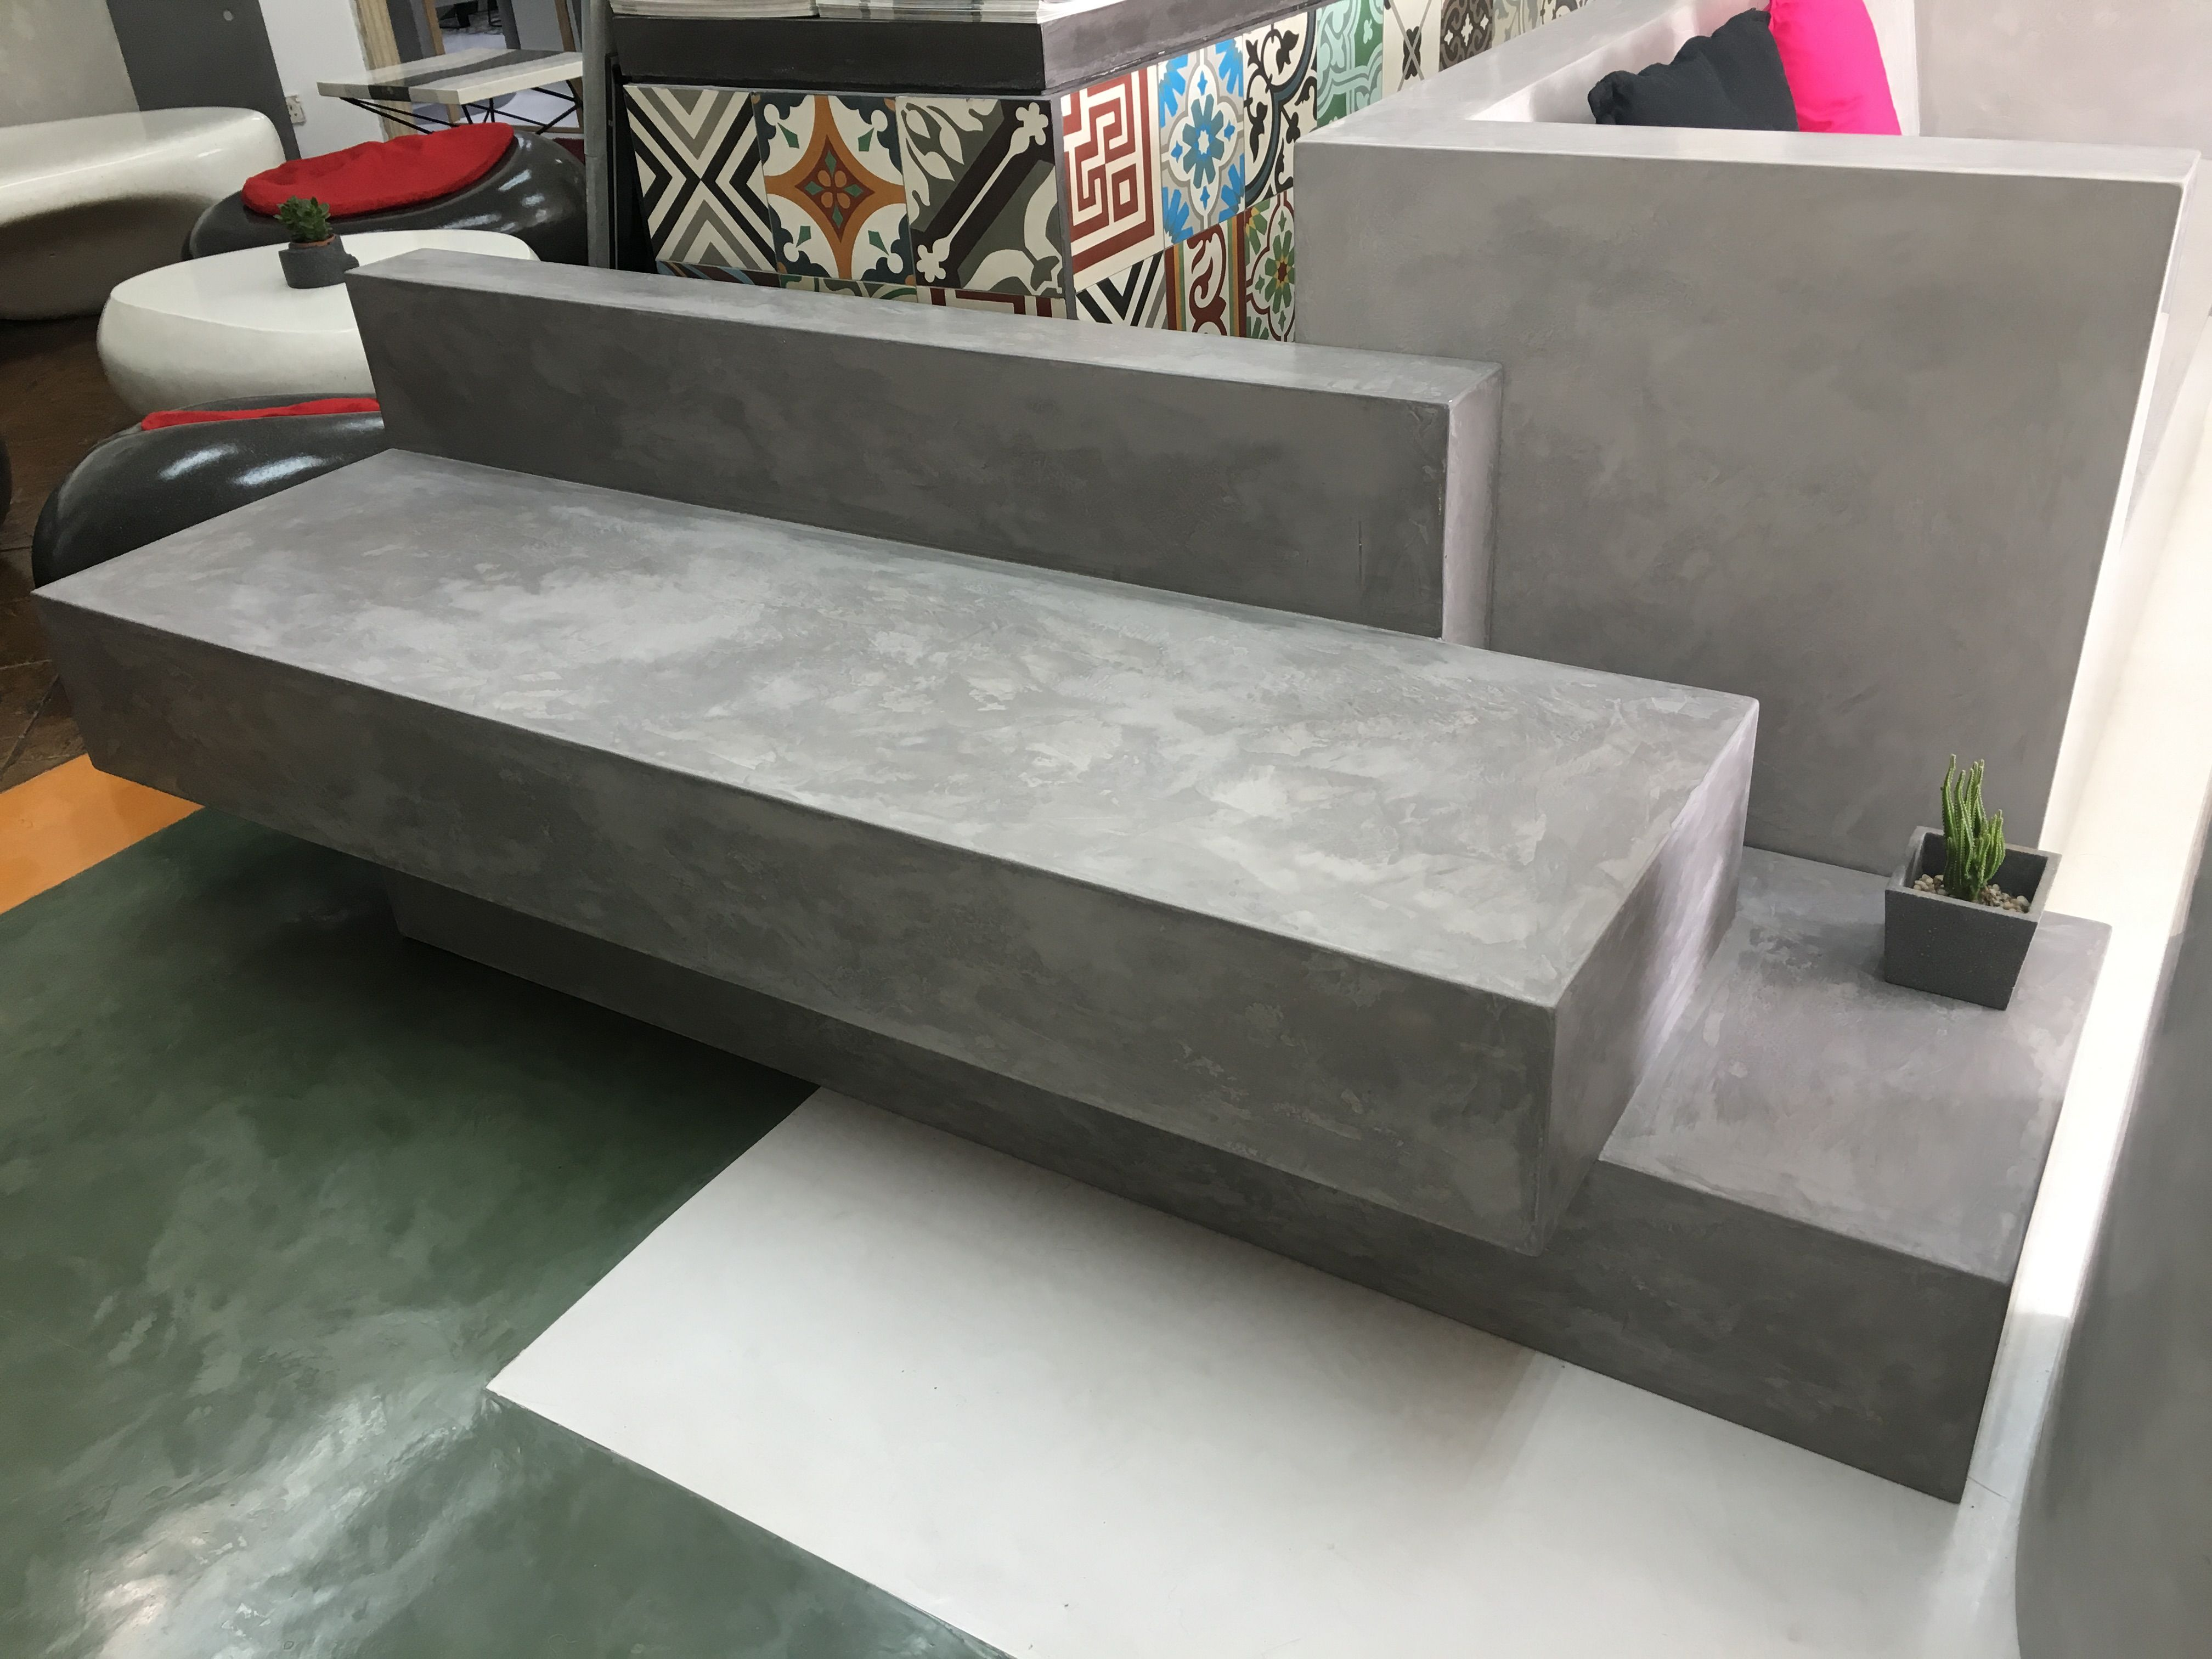 Bench Seater Cement Furniture Malaysia Cement Furniture Cement Bench Furniture